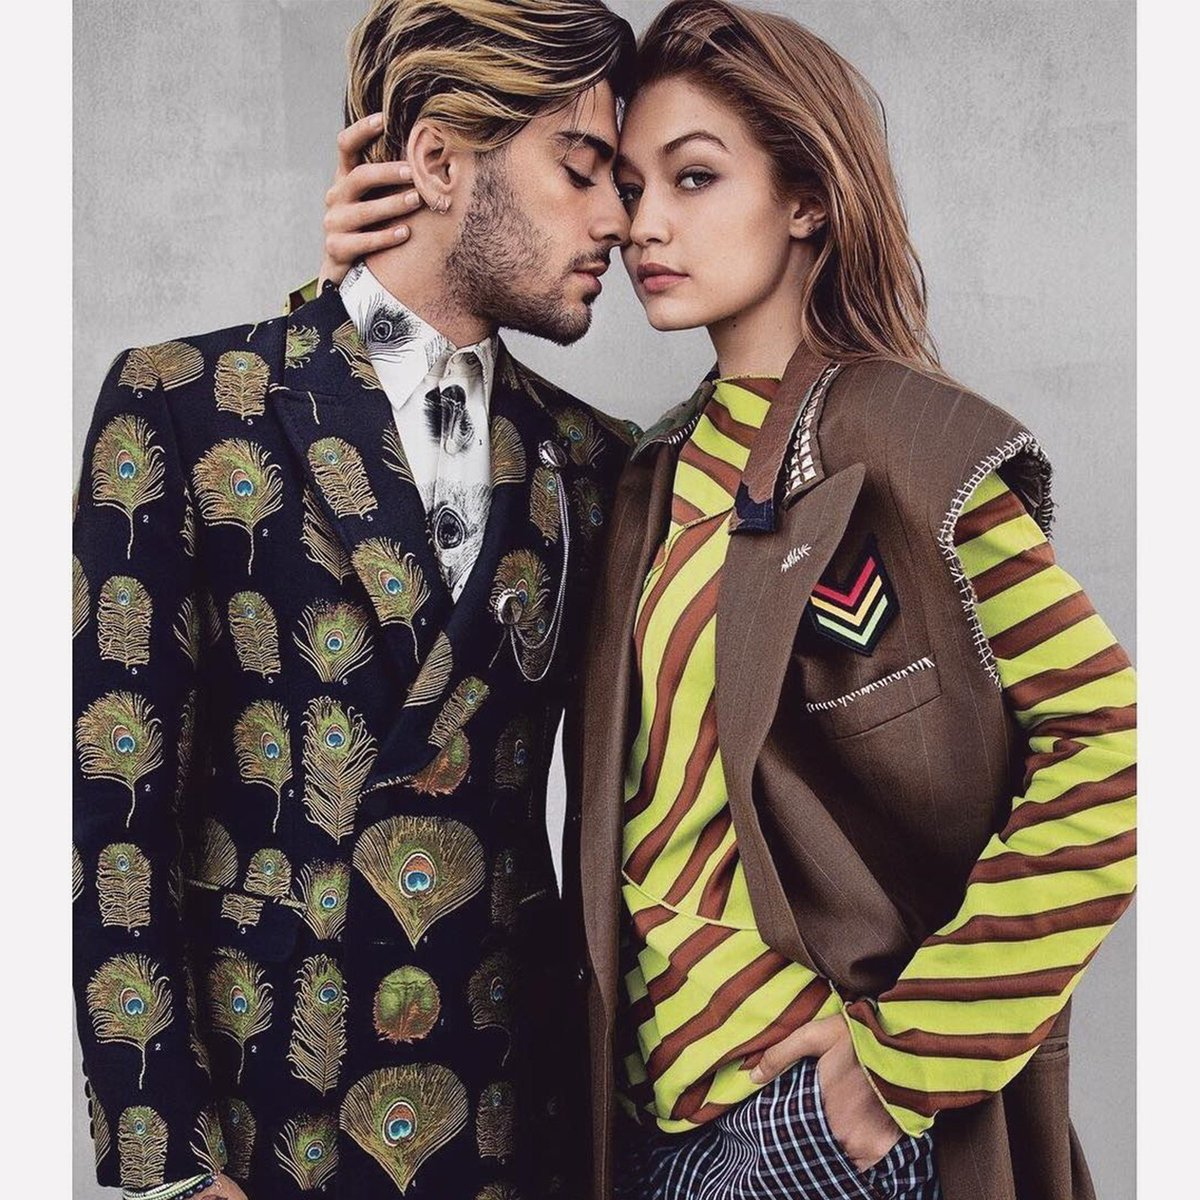 These two...  #GigiHadid #ZaynMalik <br>http://pic.twitter.com/GhotyUDEAl